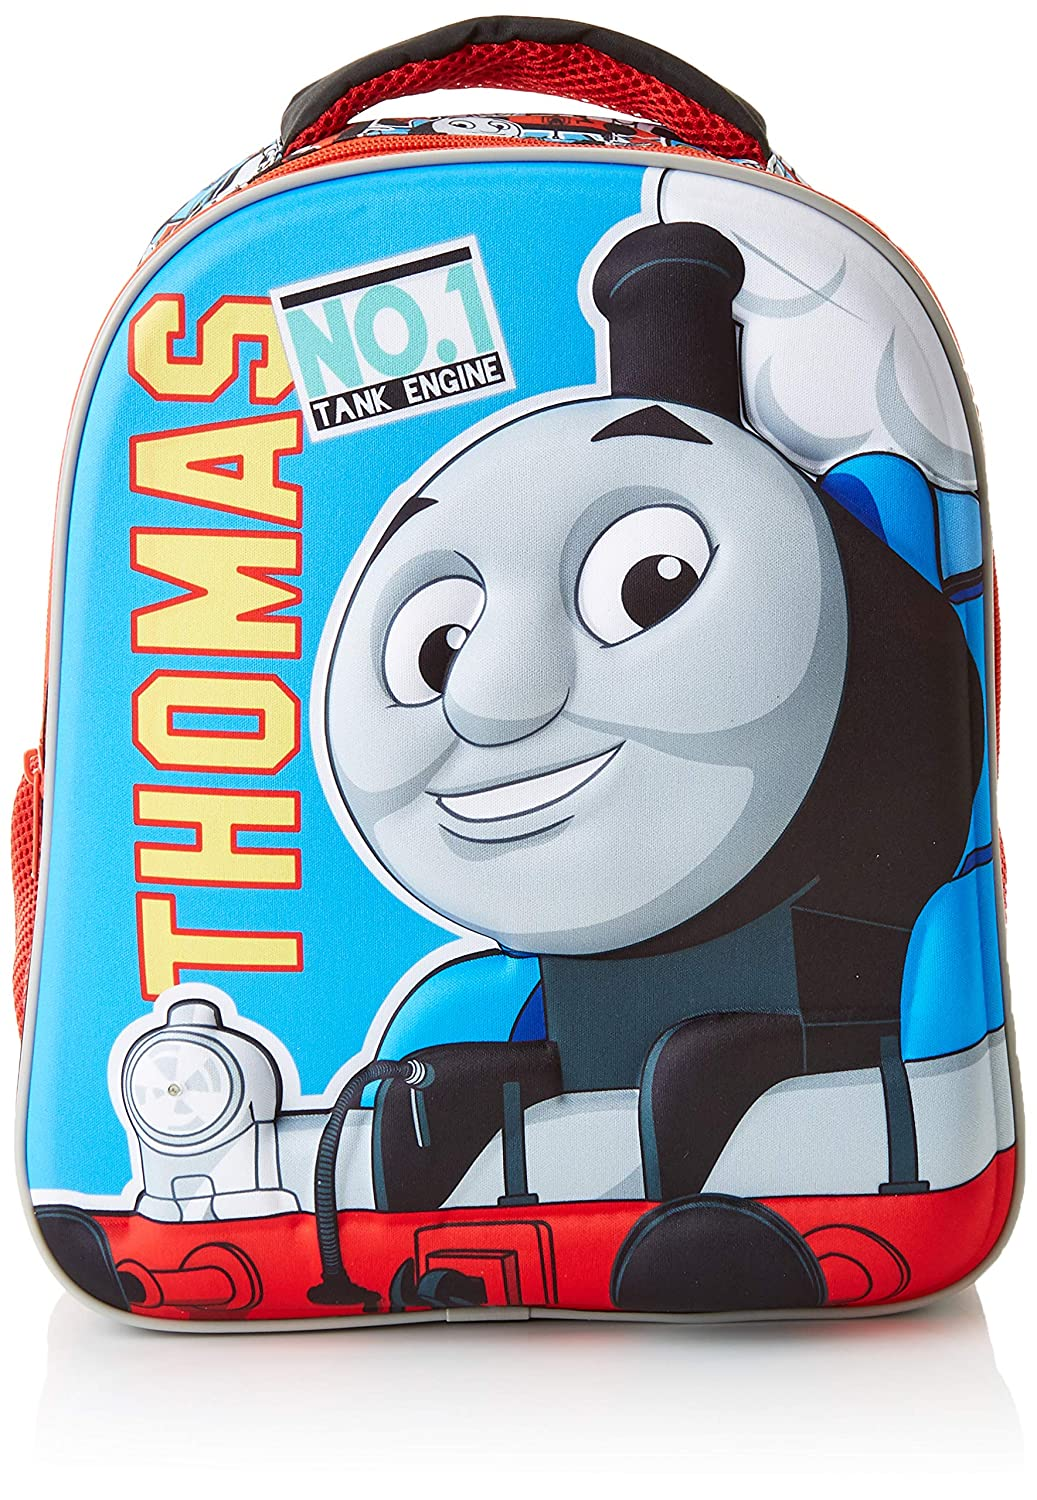 Diakakis 000570441 zaino 3D 27 x 31 x 10 Thomas The Train 2 casi, multicolore